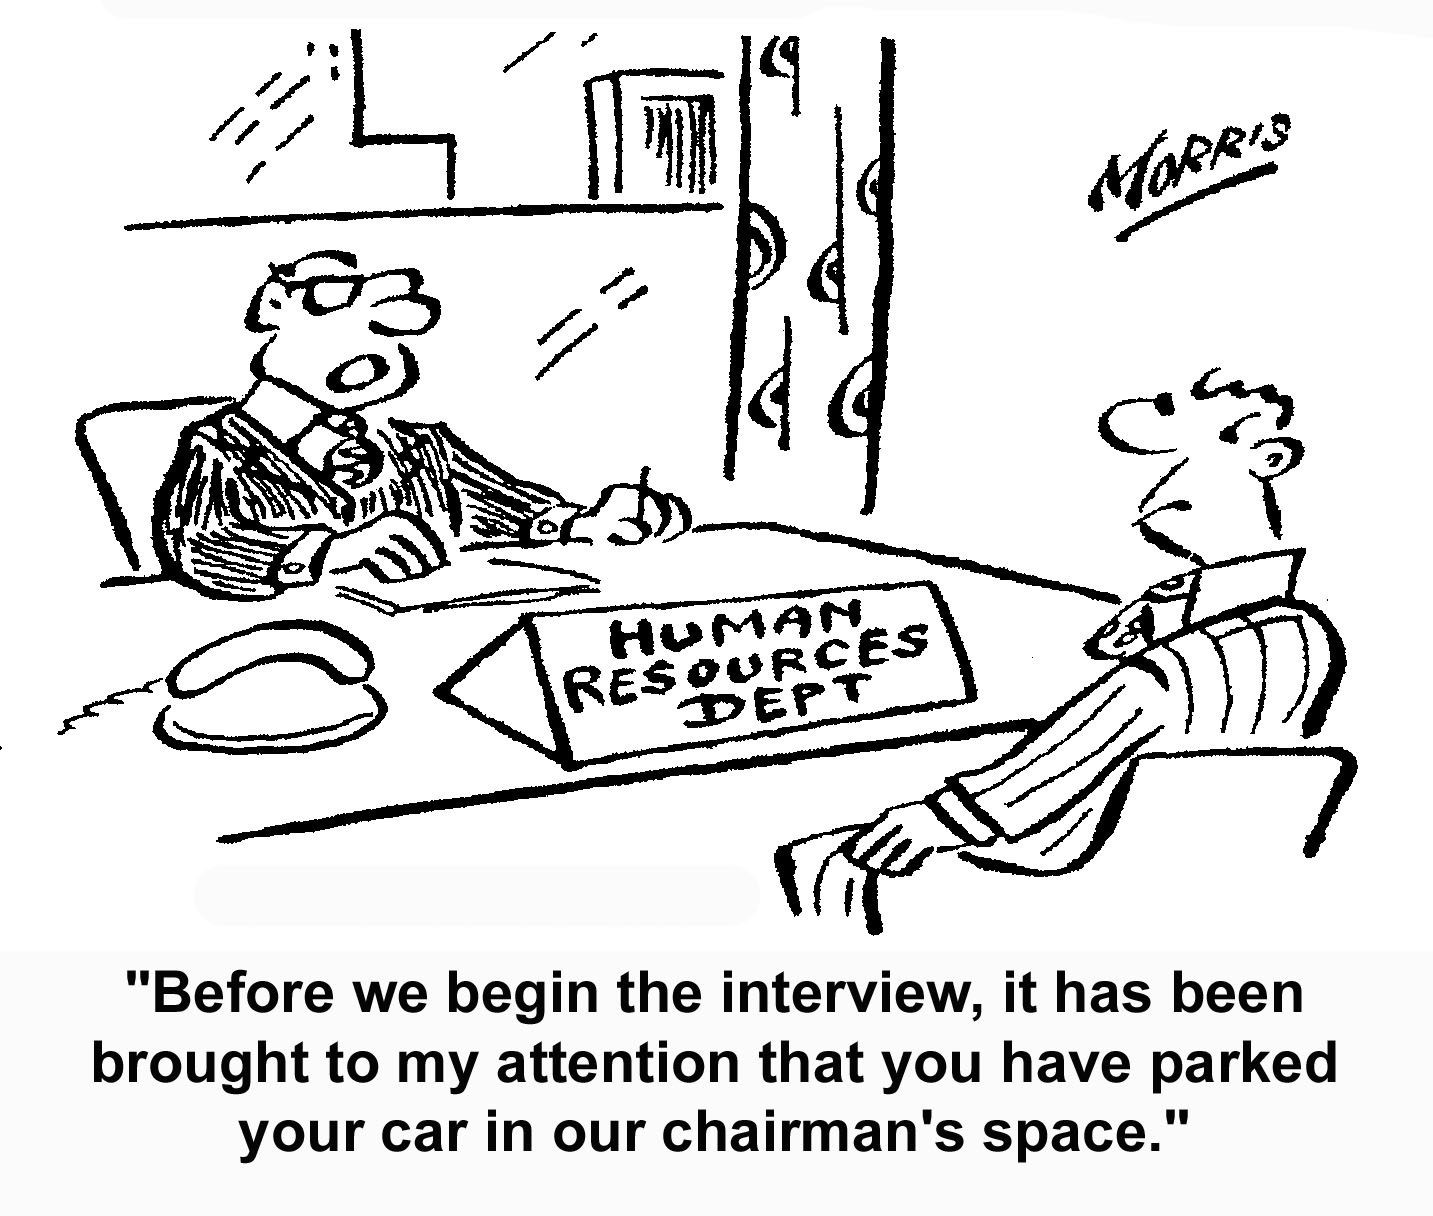 interview-parked-chairmans-space